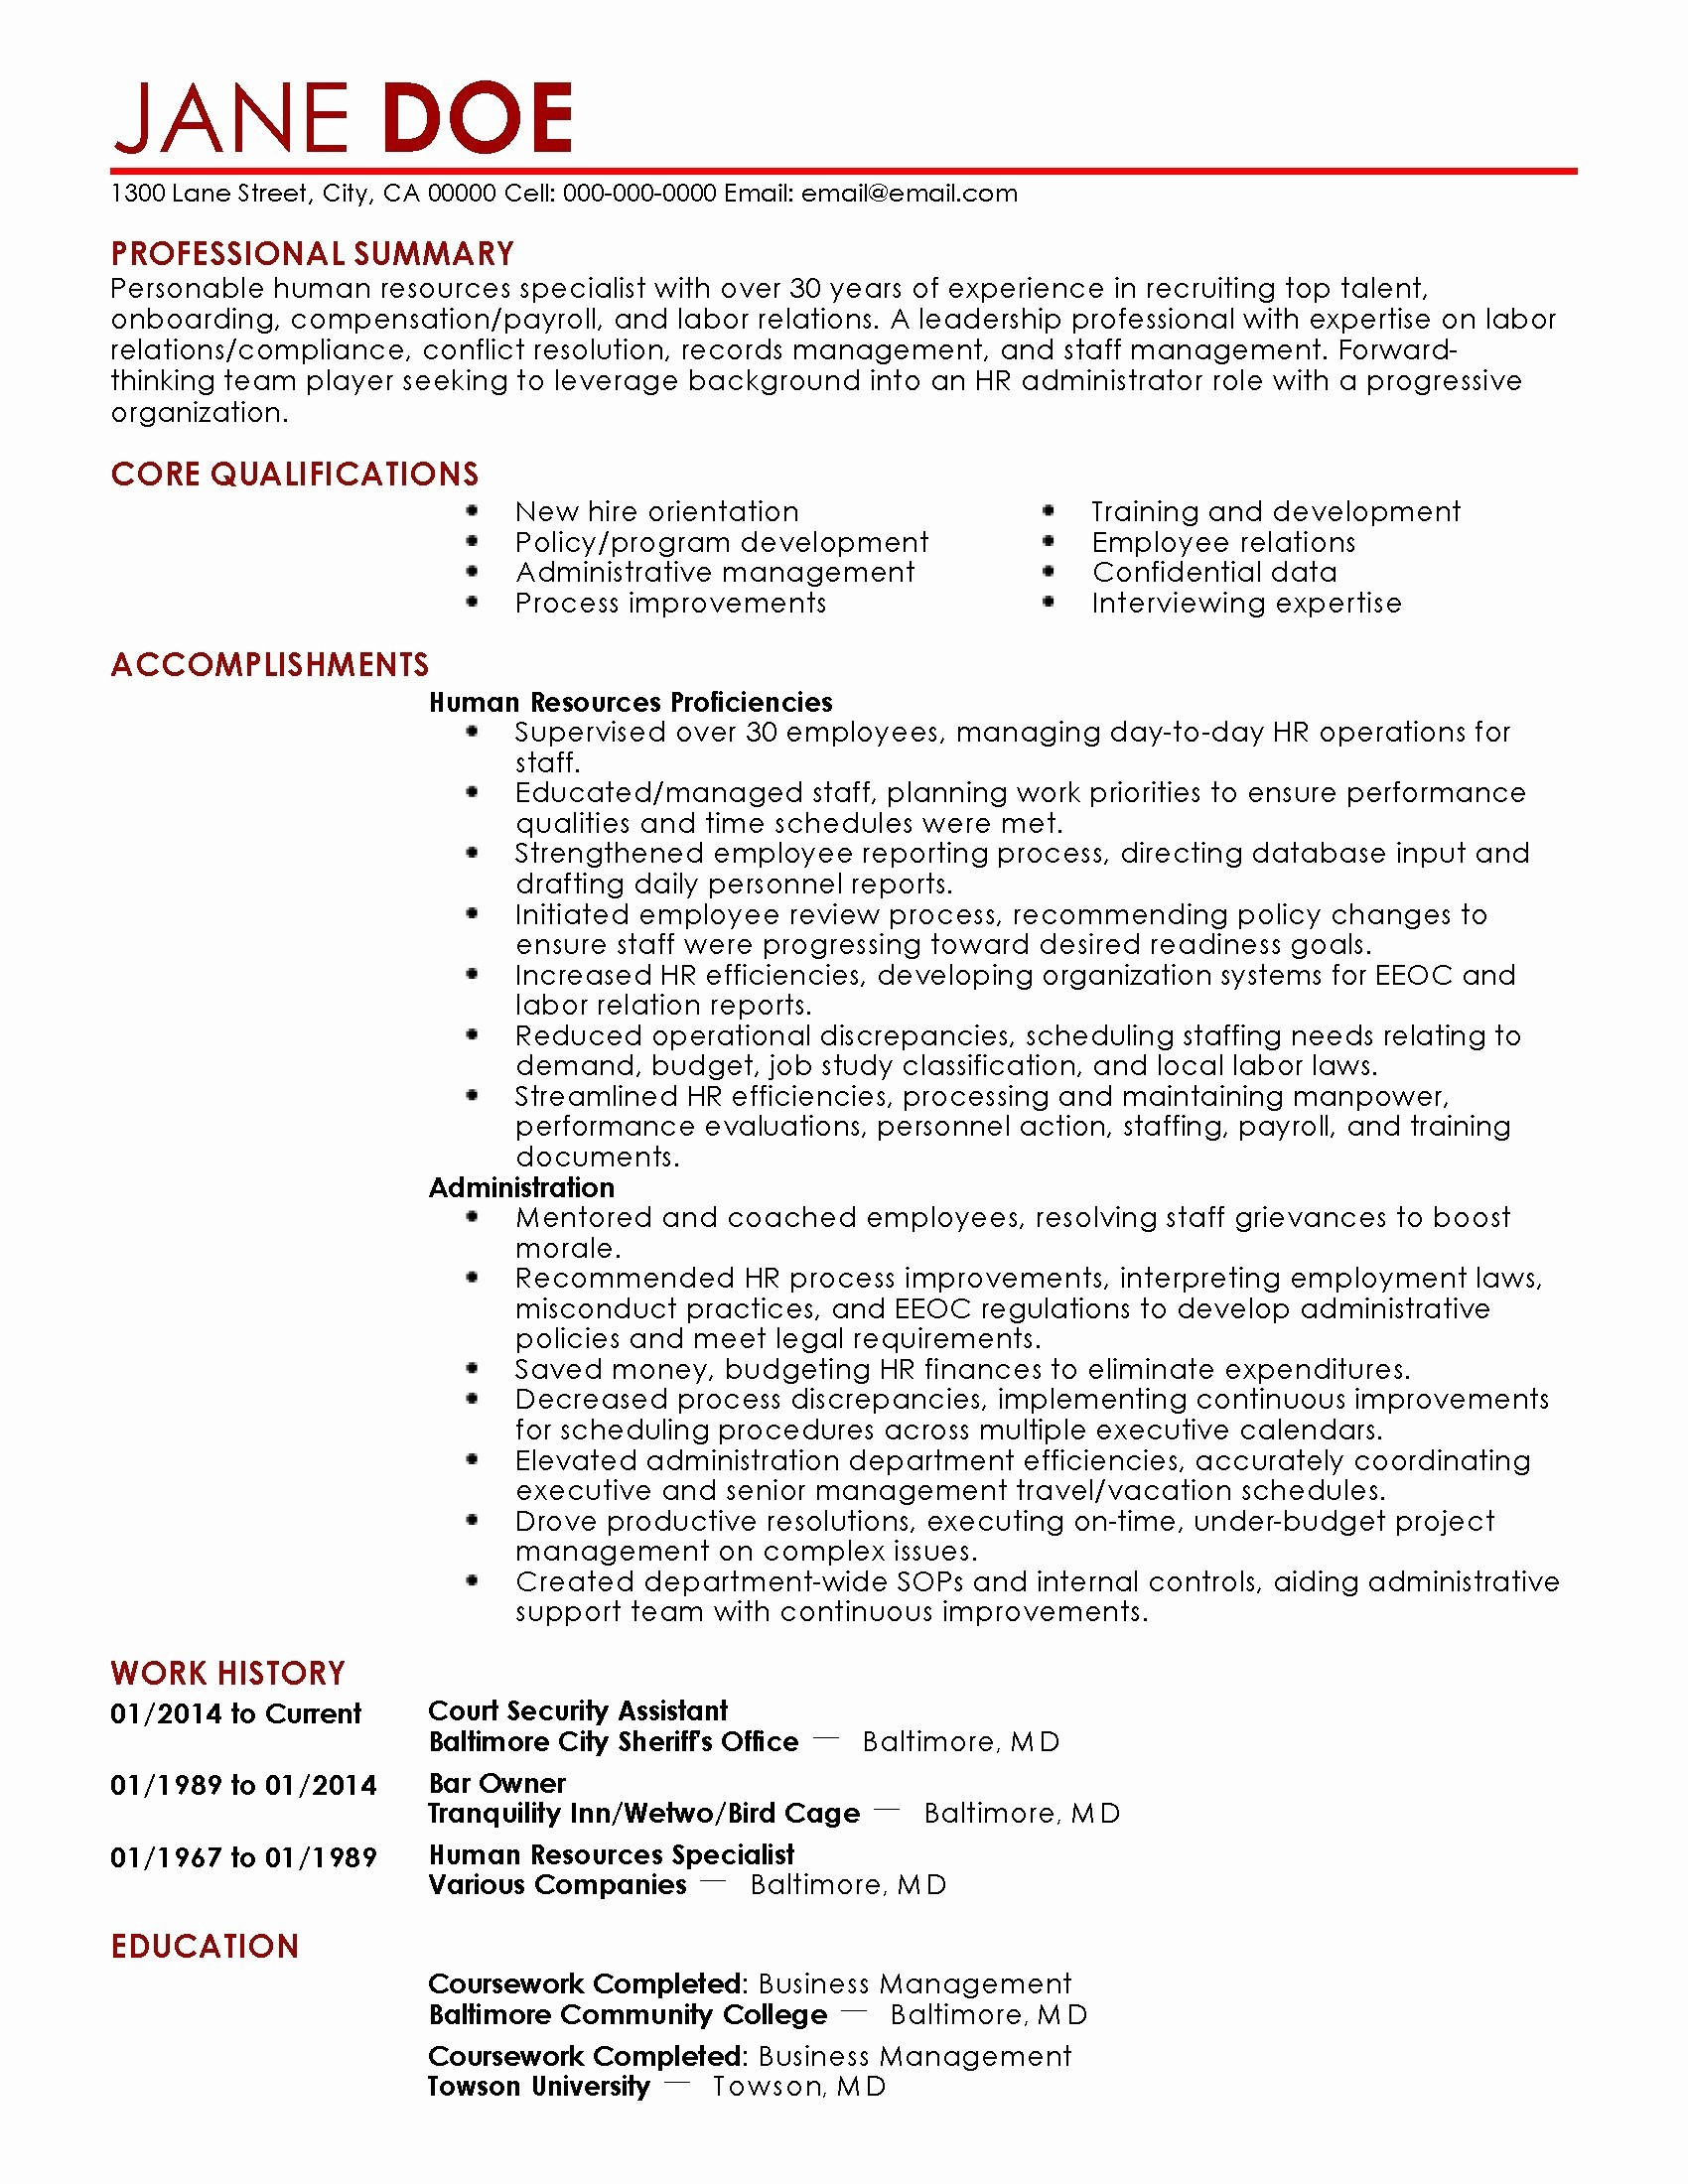 Medical Office assistant Resume - 19 Unique Medical assistant Resume Template